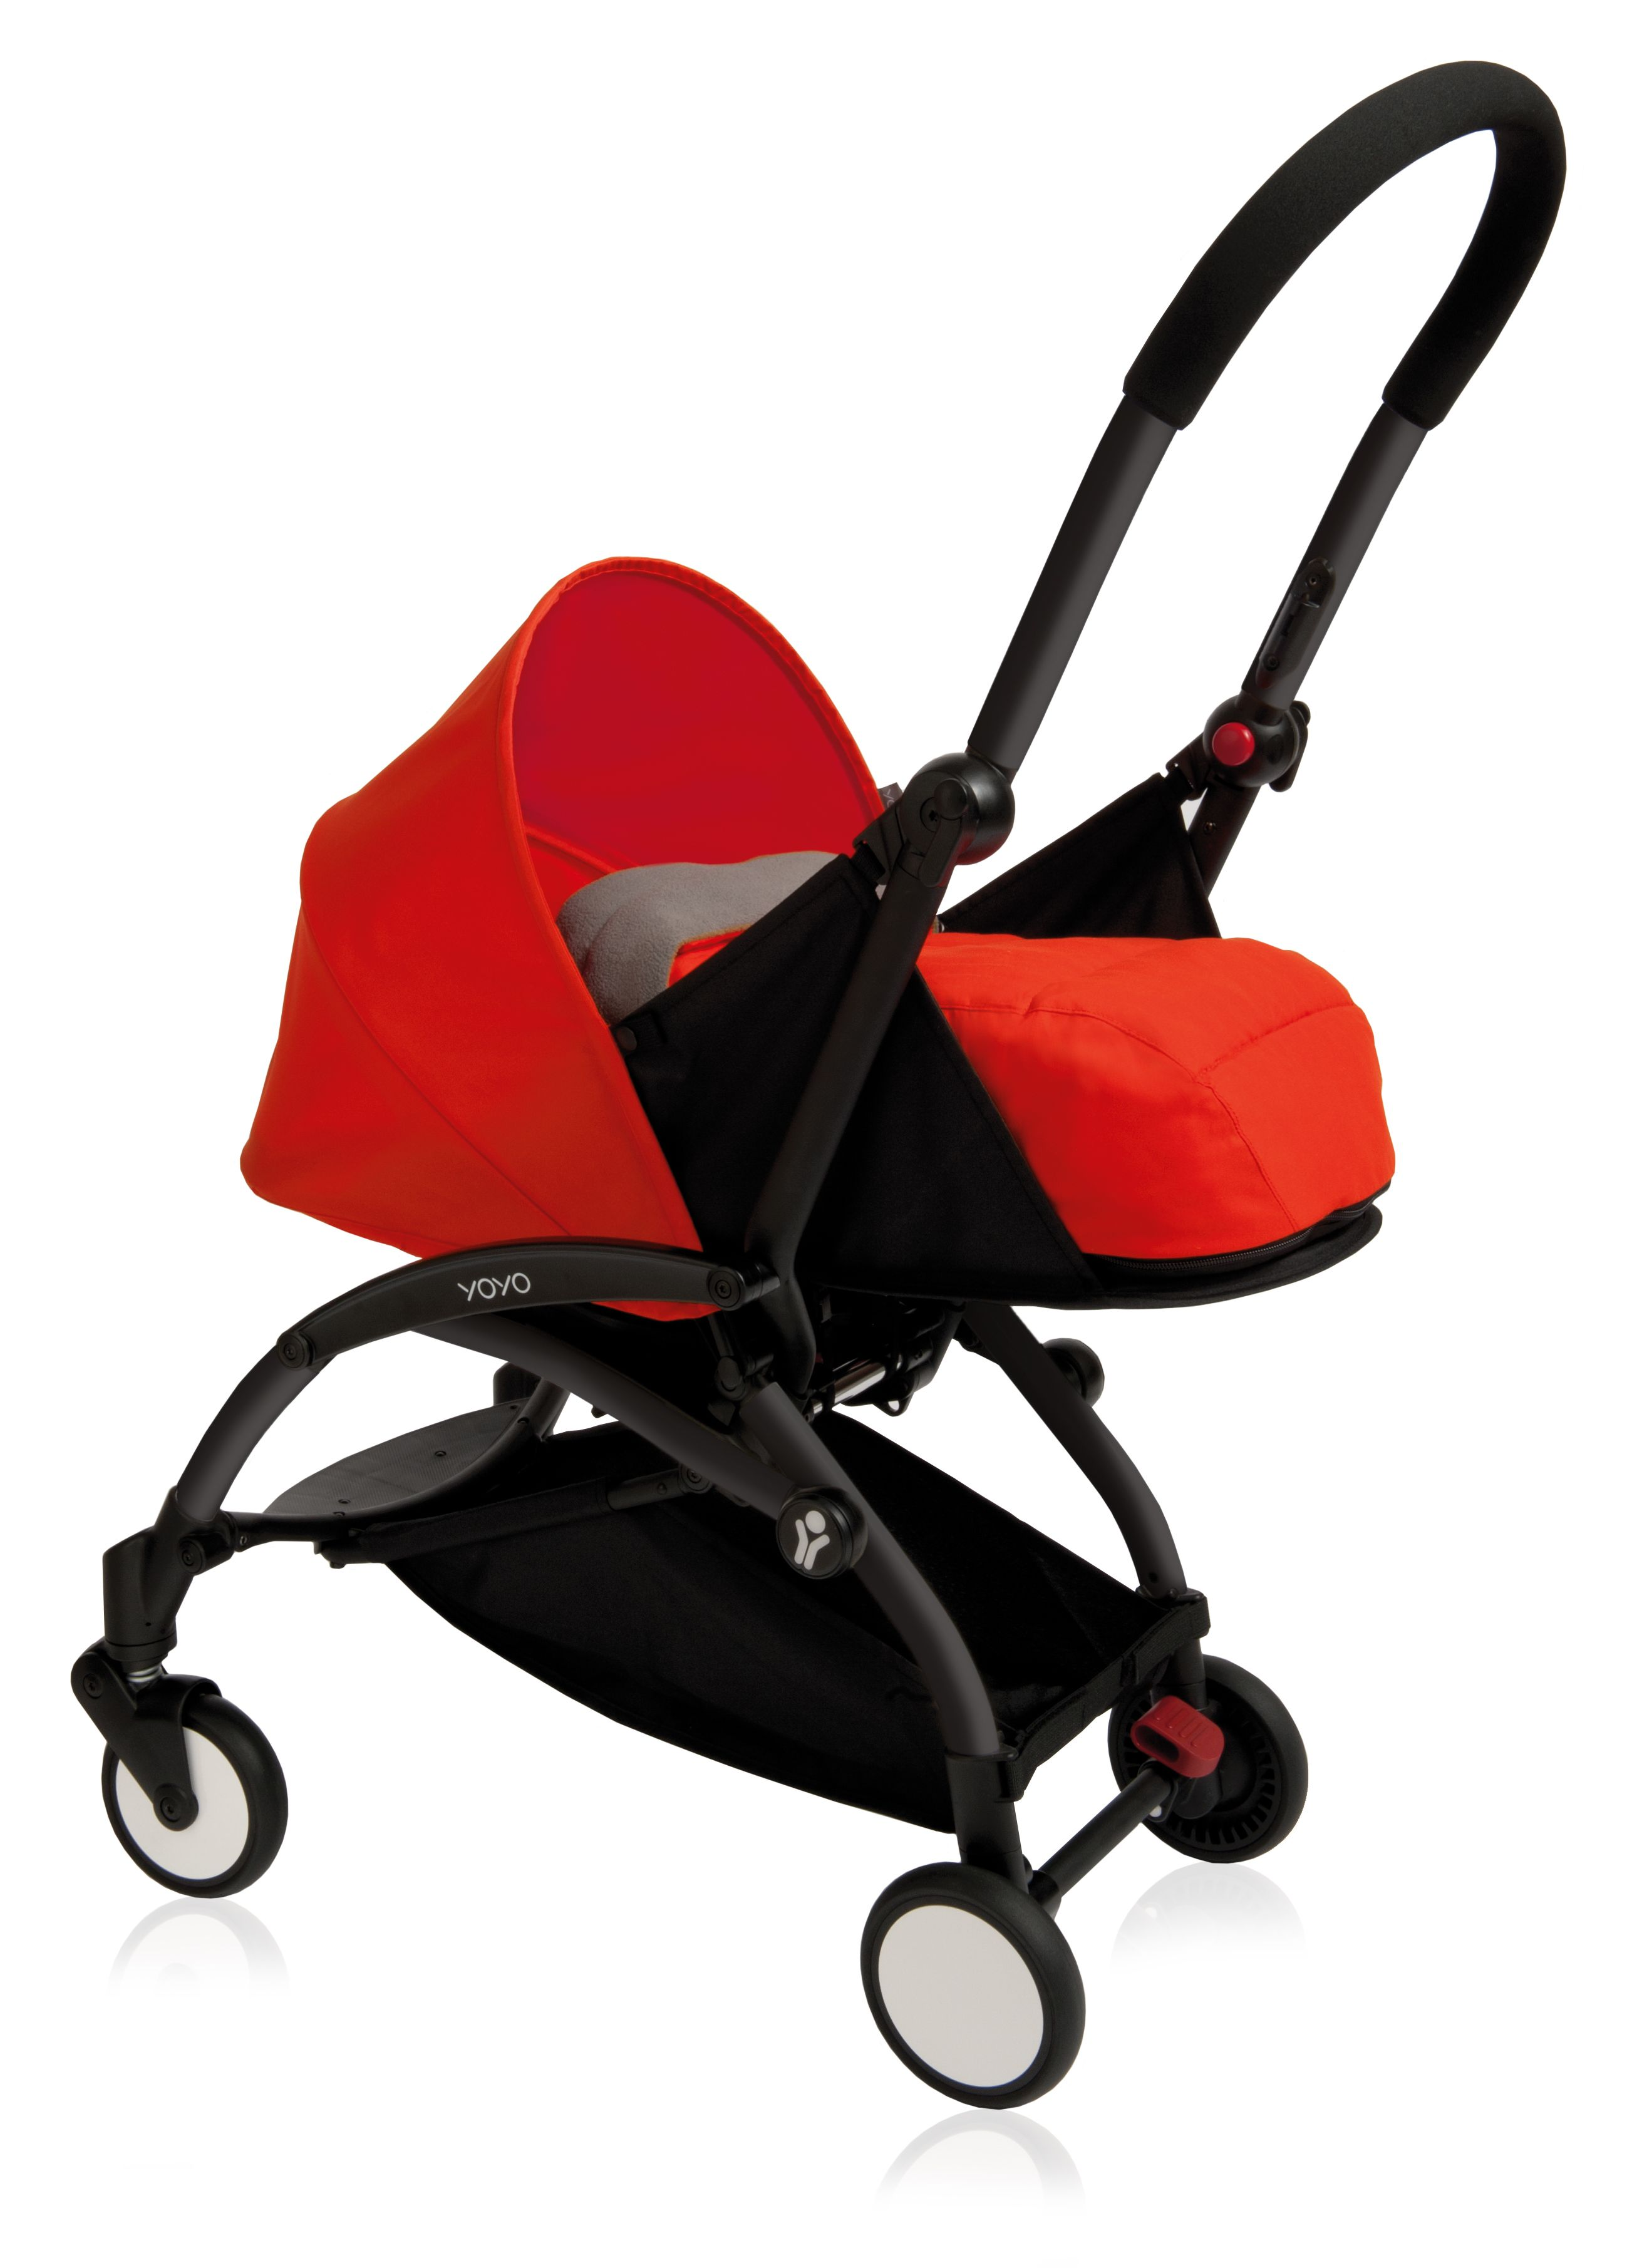 BABYZEN stroller YOYO™ 0+ NEWBORN The YOYO is the most